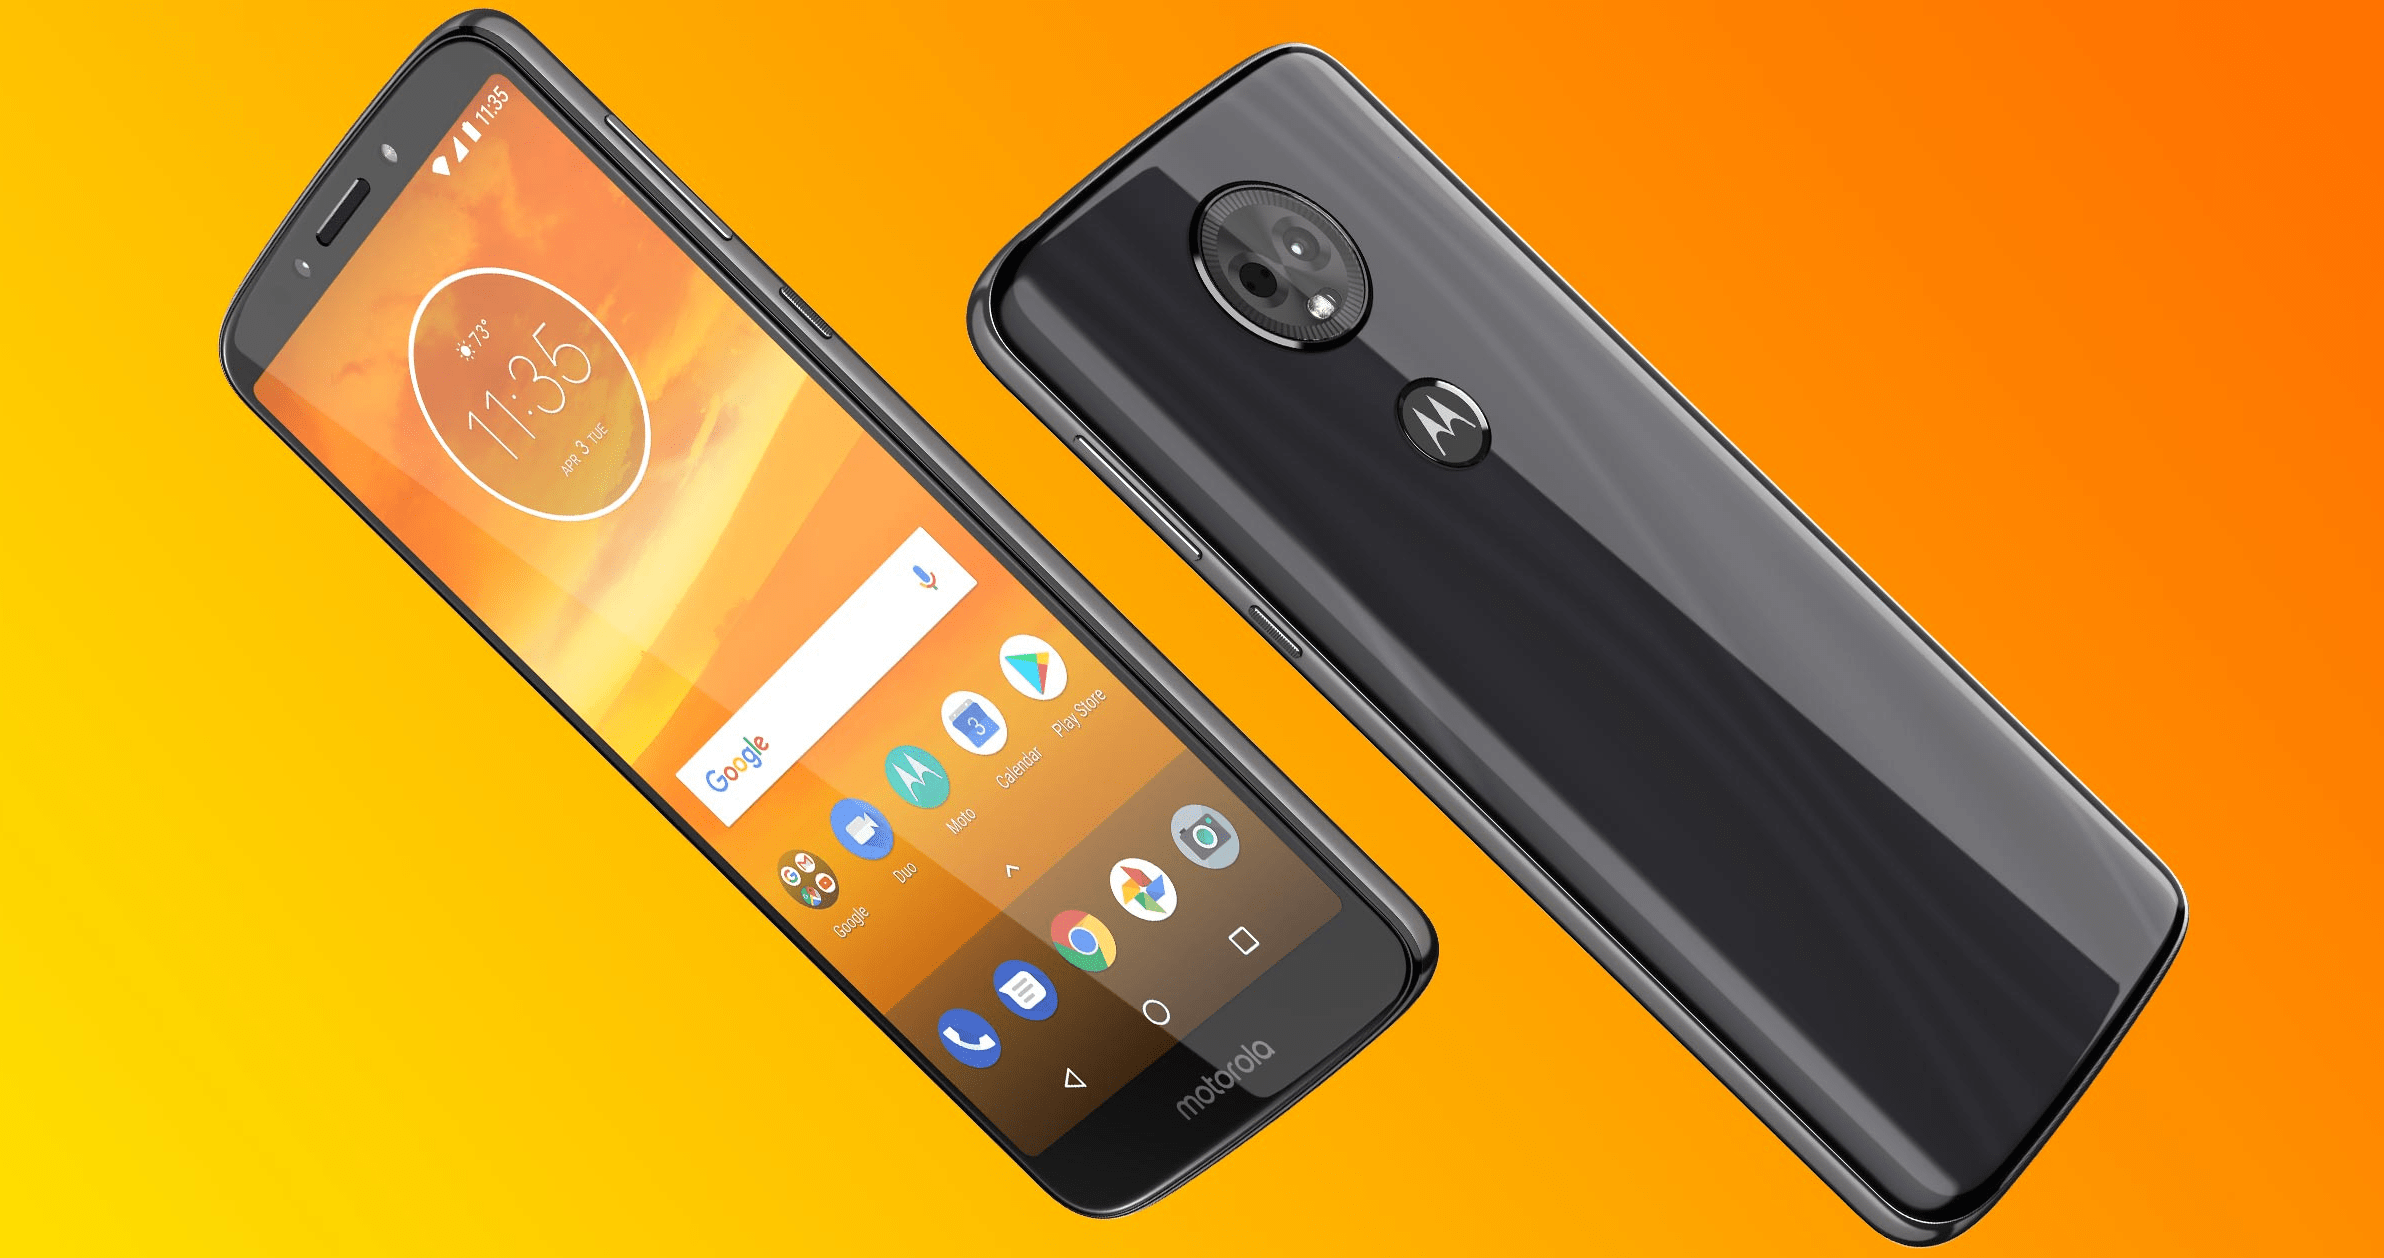 The Moto E5 Plus Will Be Powered By A Snapdragon 430